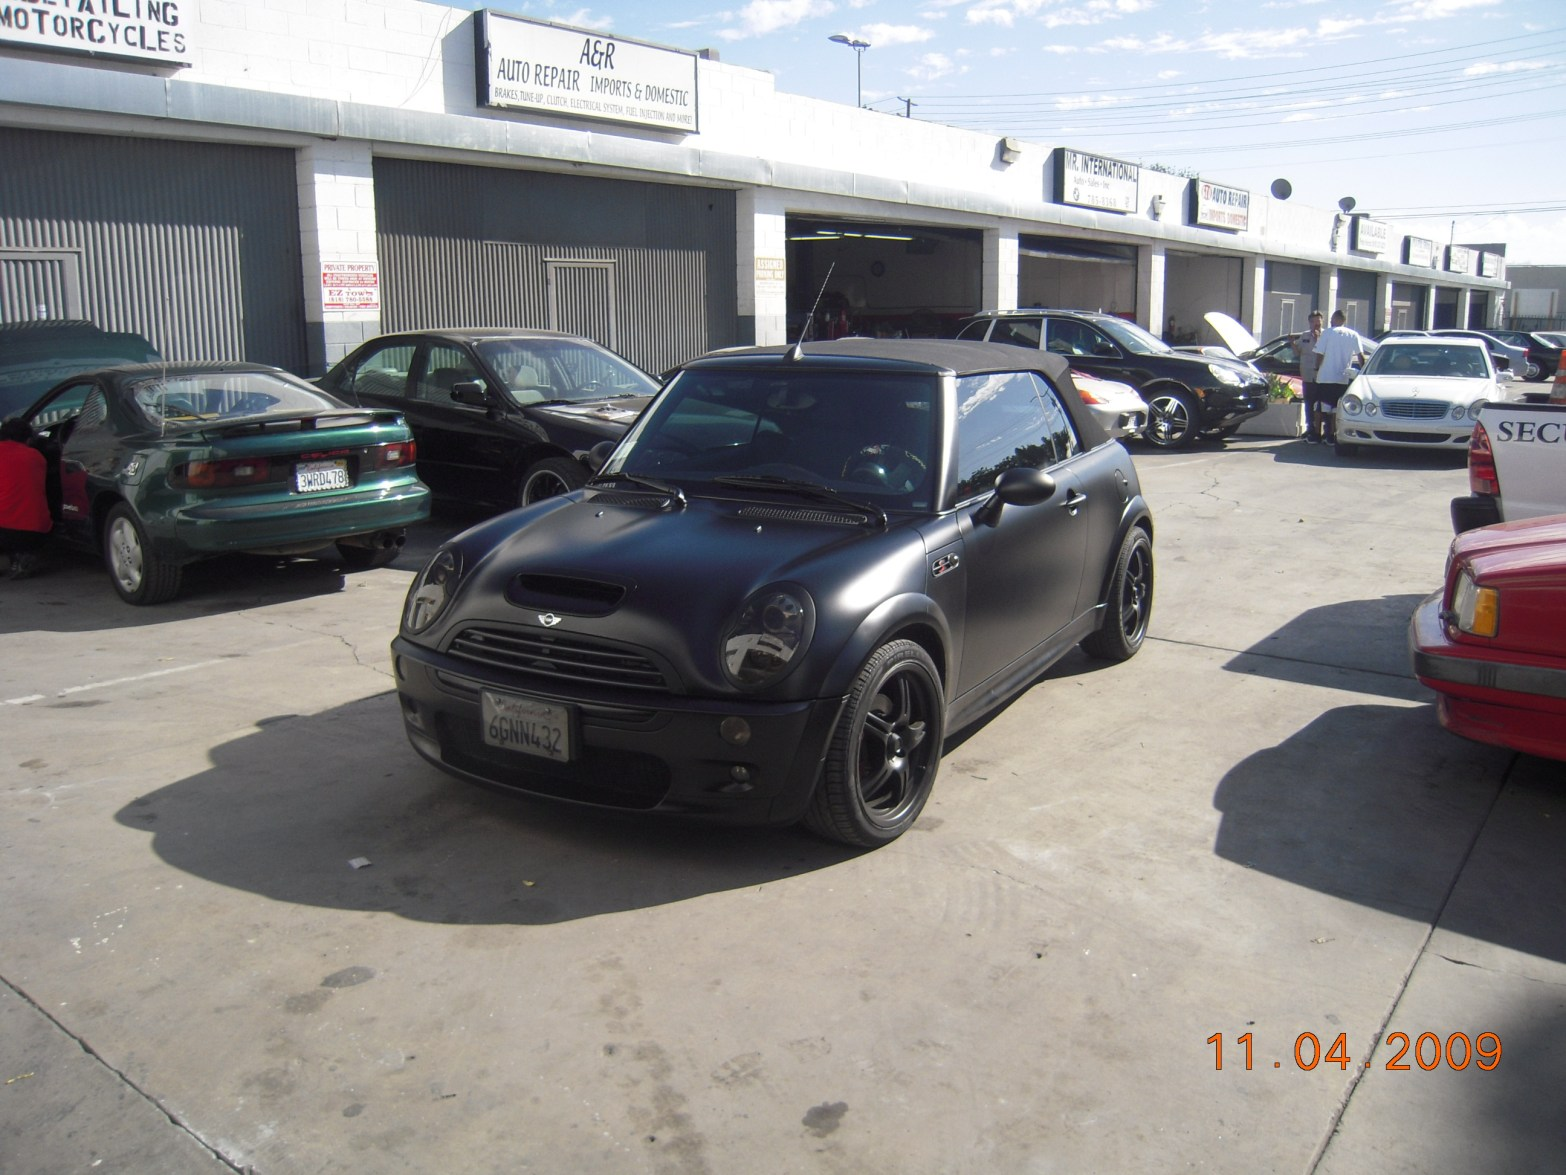 west-coast-body-and-paint-black-mini-cooper-matte-7